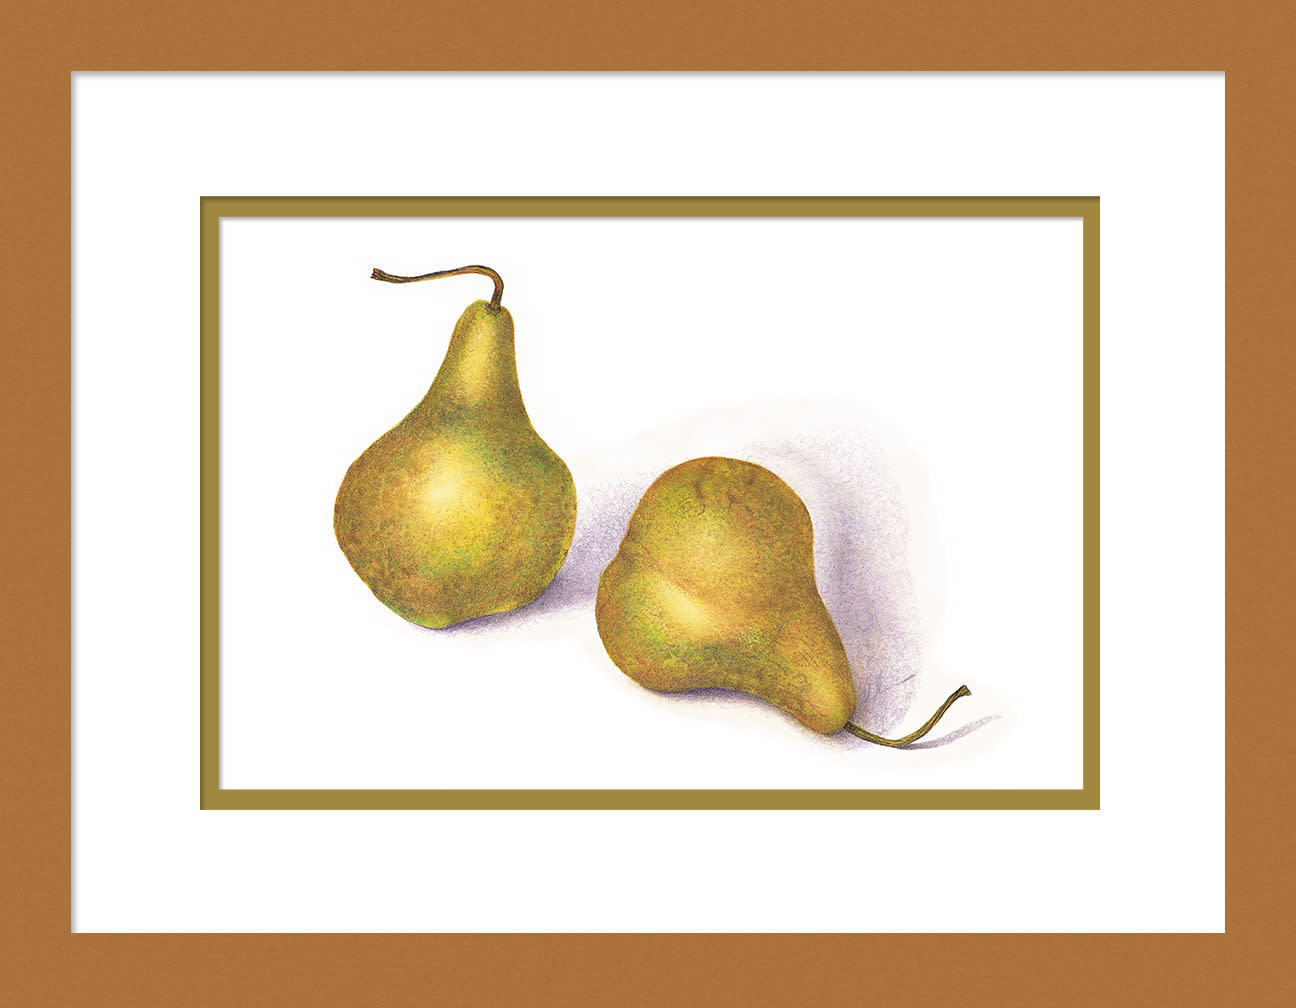 030501 green pears 2 8x12 framed to 12x16 megdek